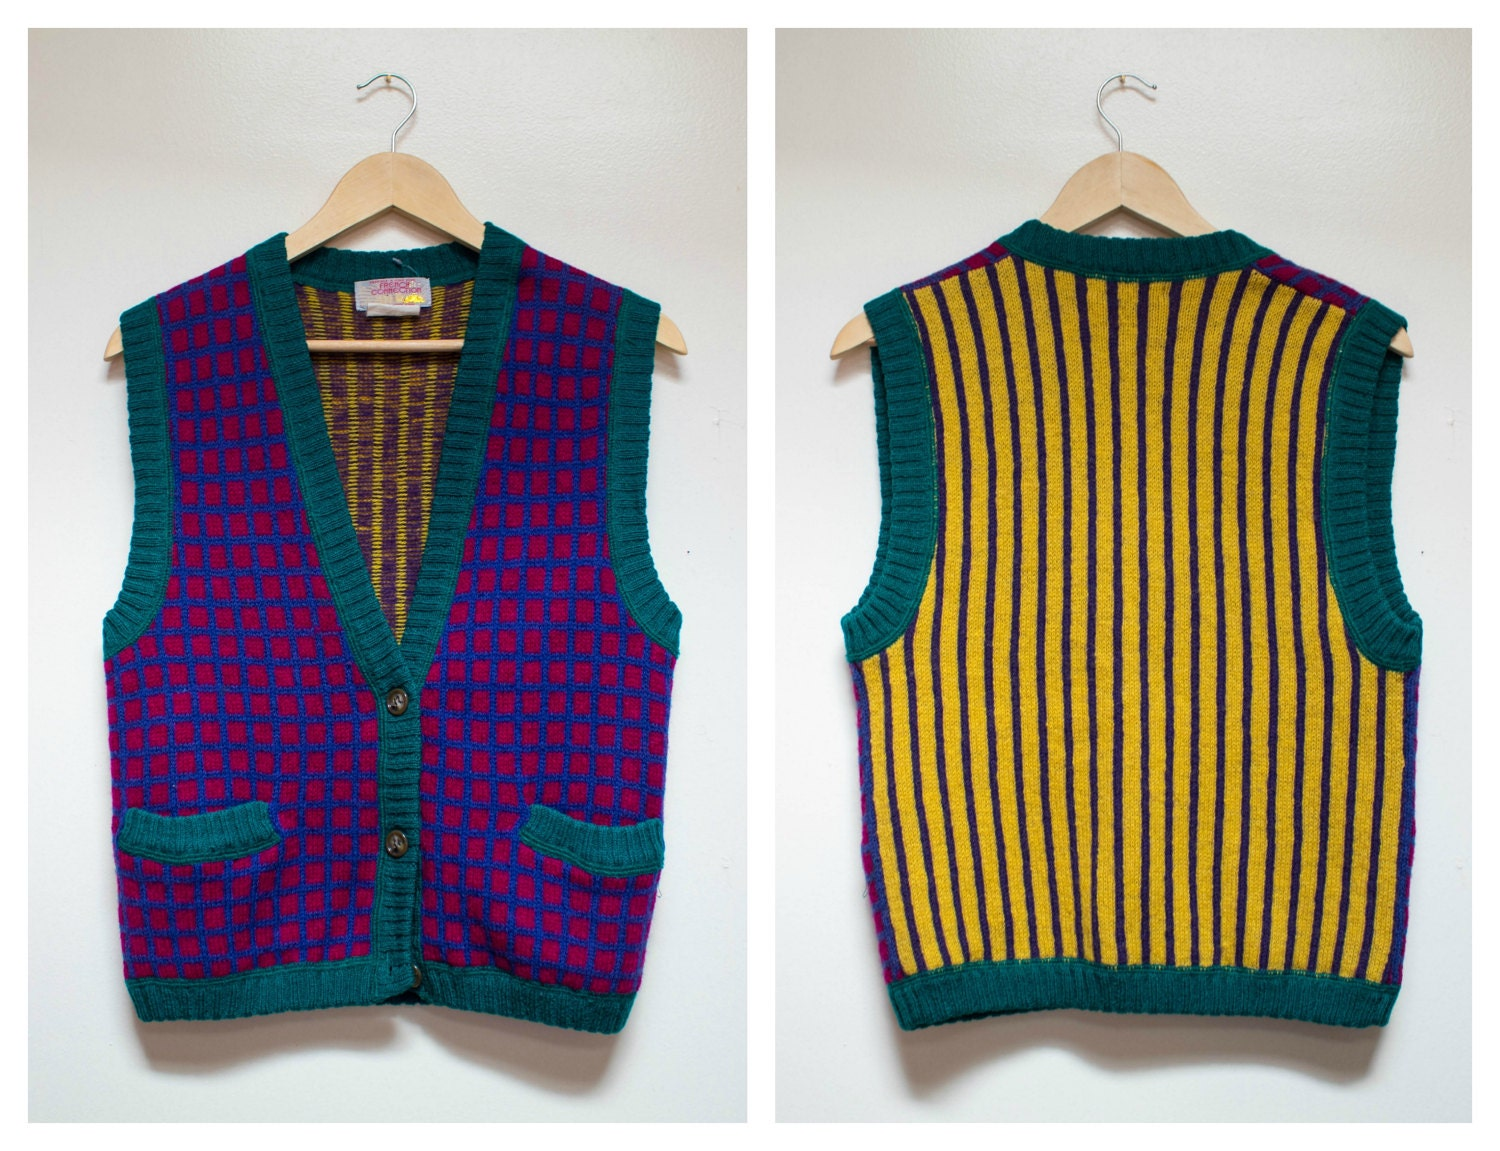 Vintage 100% Wool Vest French Connection Size S Striped Plaid Vest Mustard Purple Kooky Sweater Party Sweater Made in Hong Kong